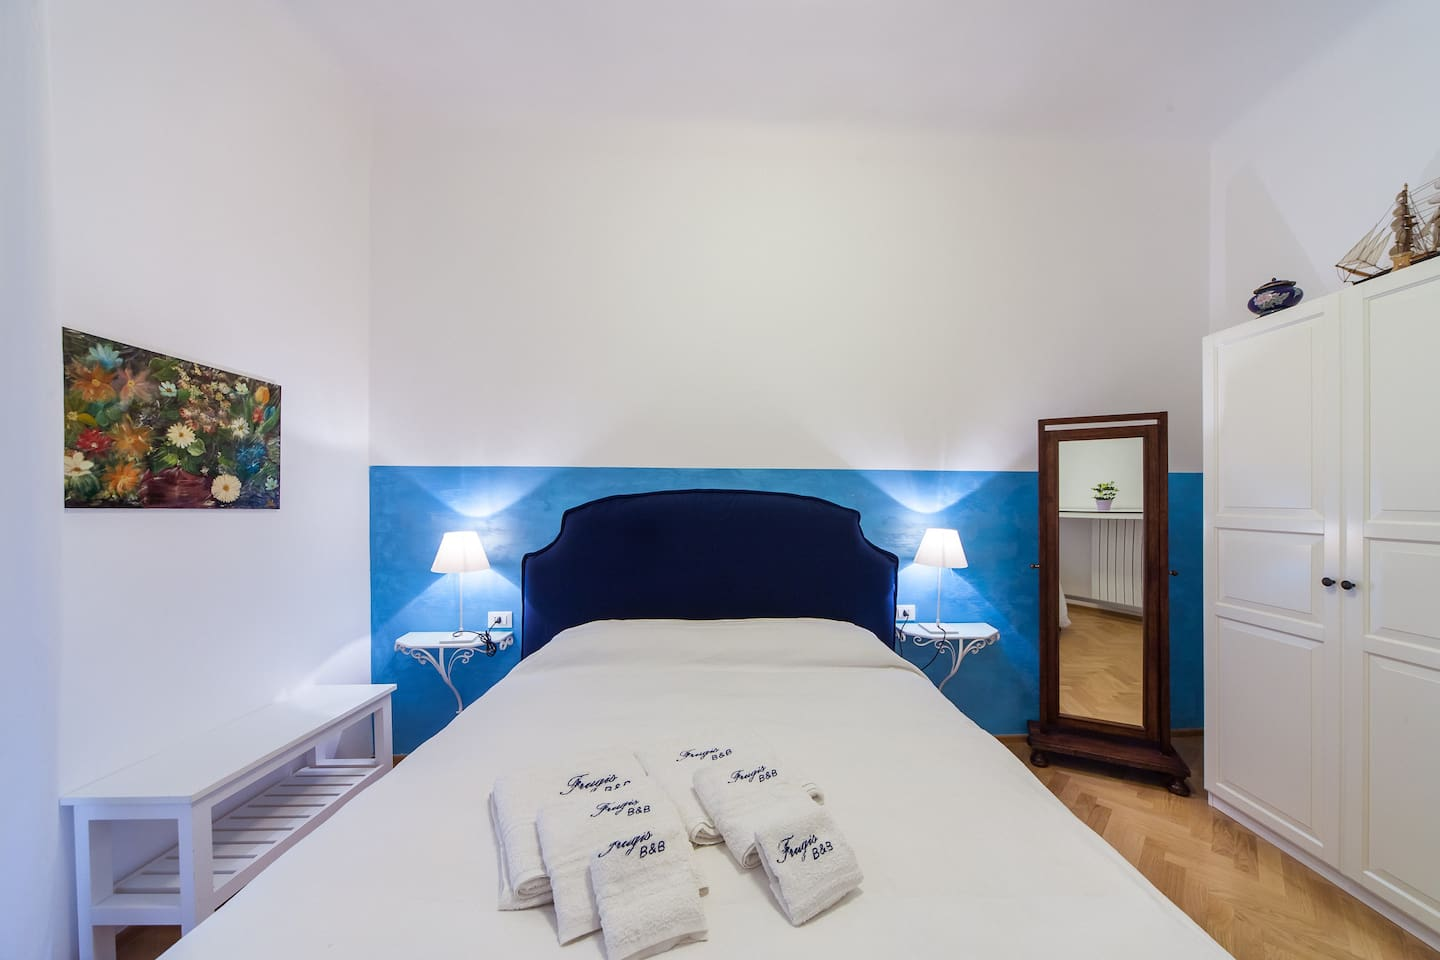 20 migliori bed and breakfast a polignano a mare   airbnb ...